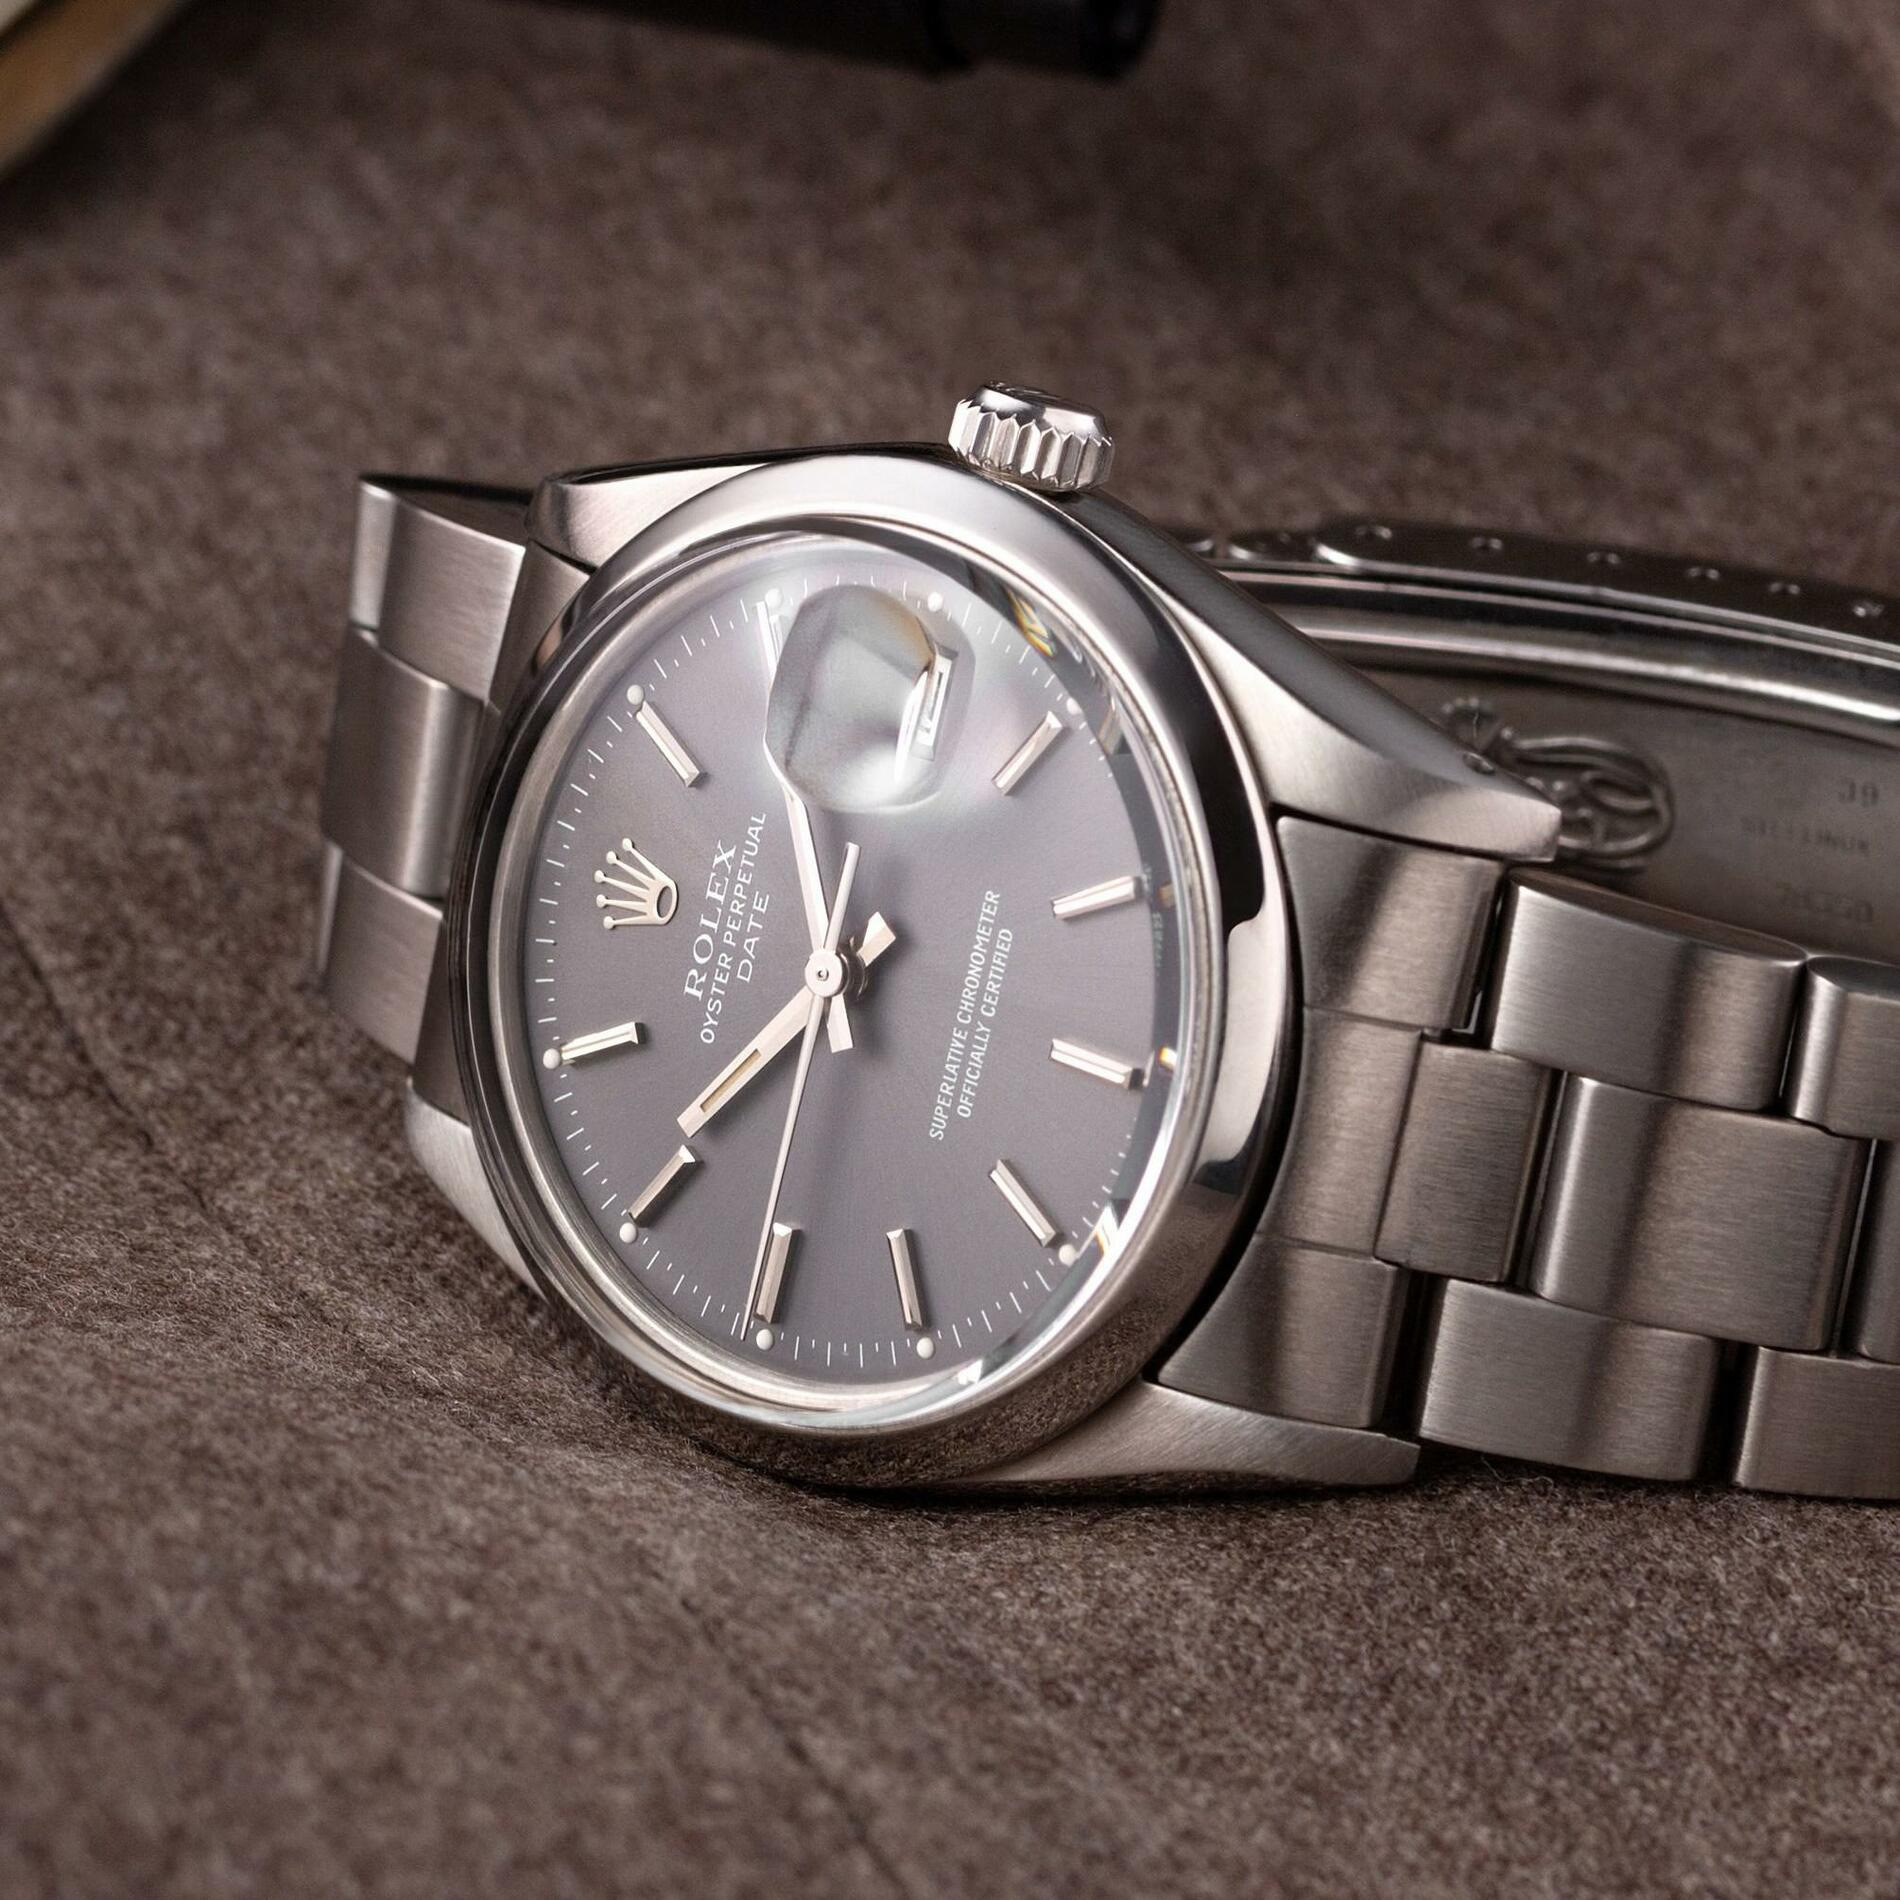 Rolex Oyster Perpetual Date 15000 grey dial - The Modest Man - crop